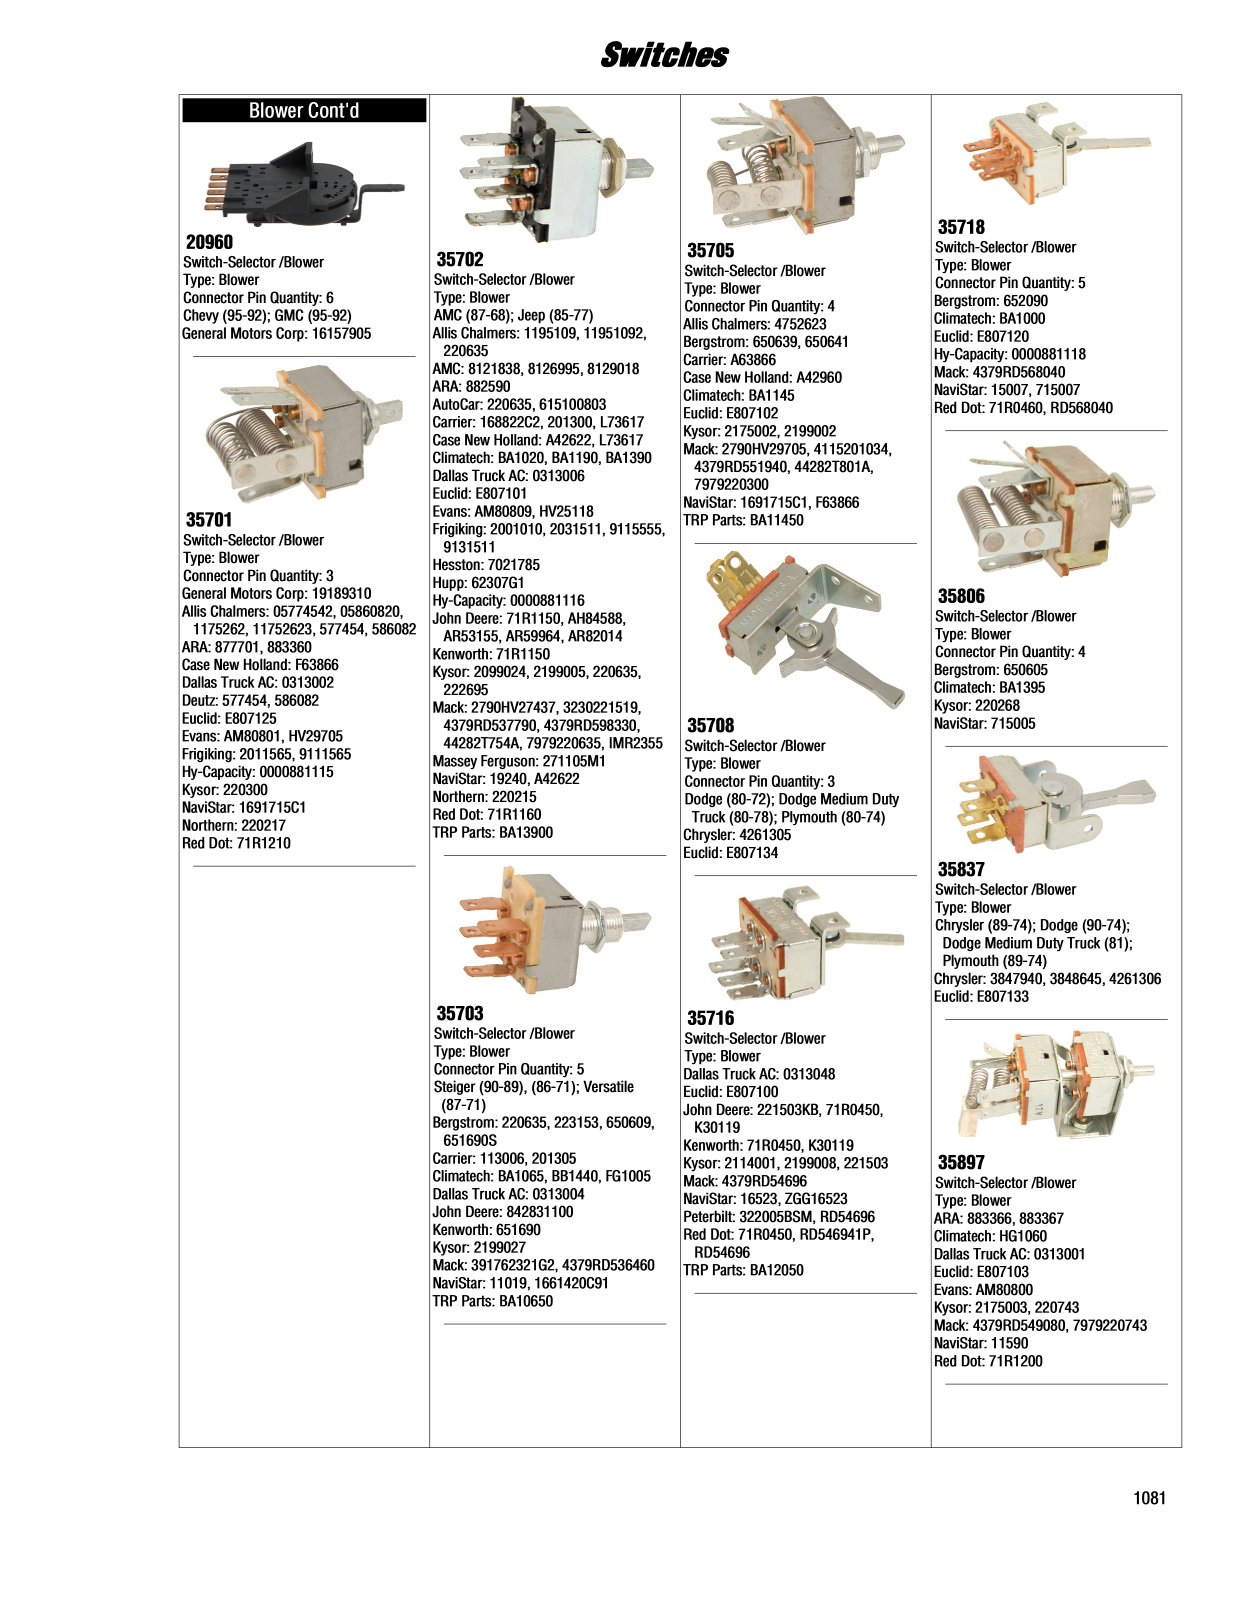 Switches 2017 illustrated guide page 1080 table of contents fandeluxe Gallery